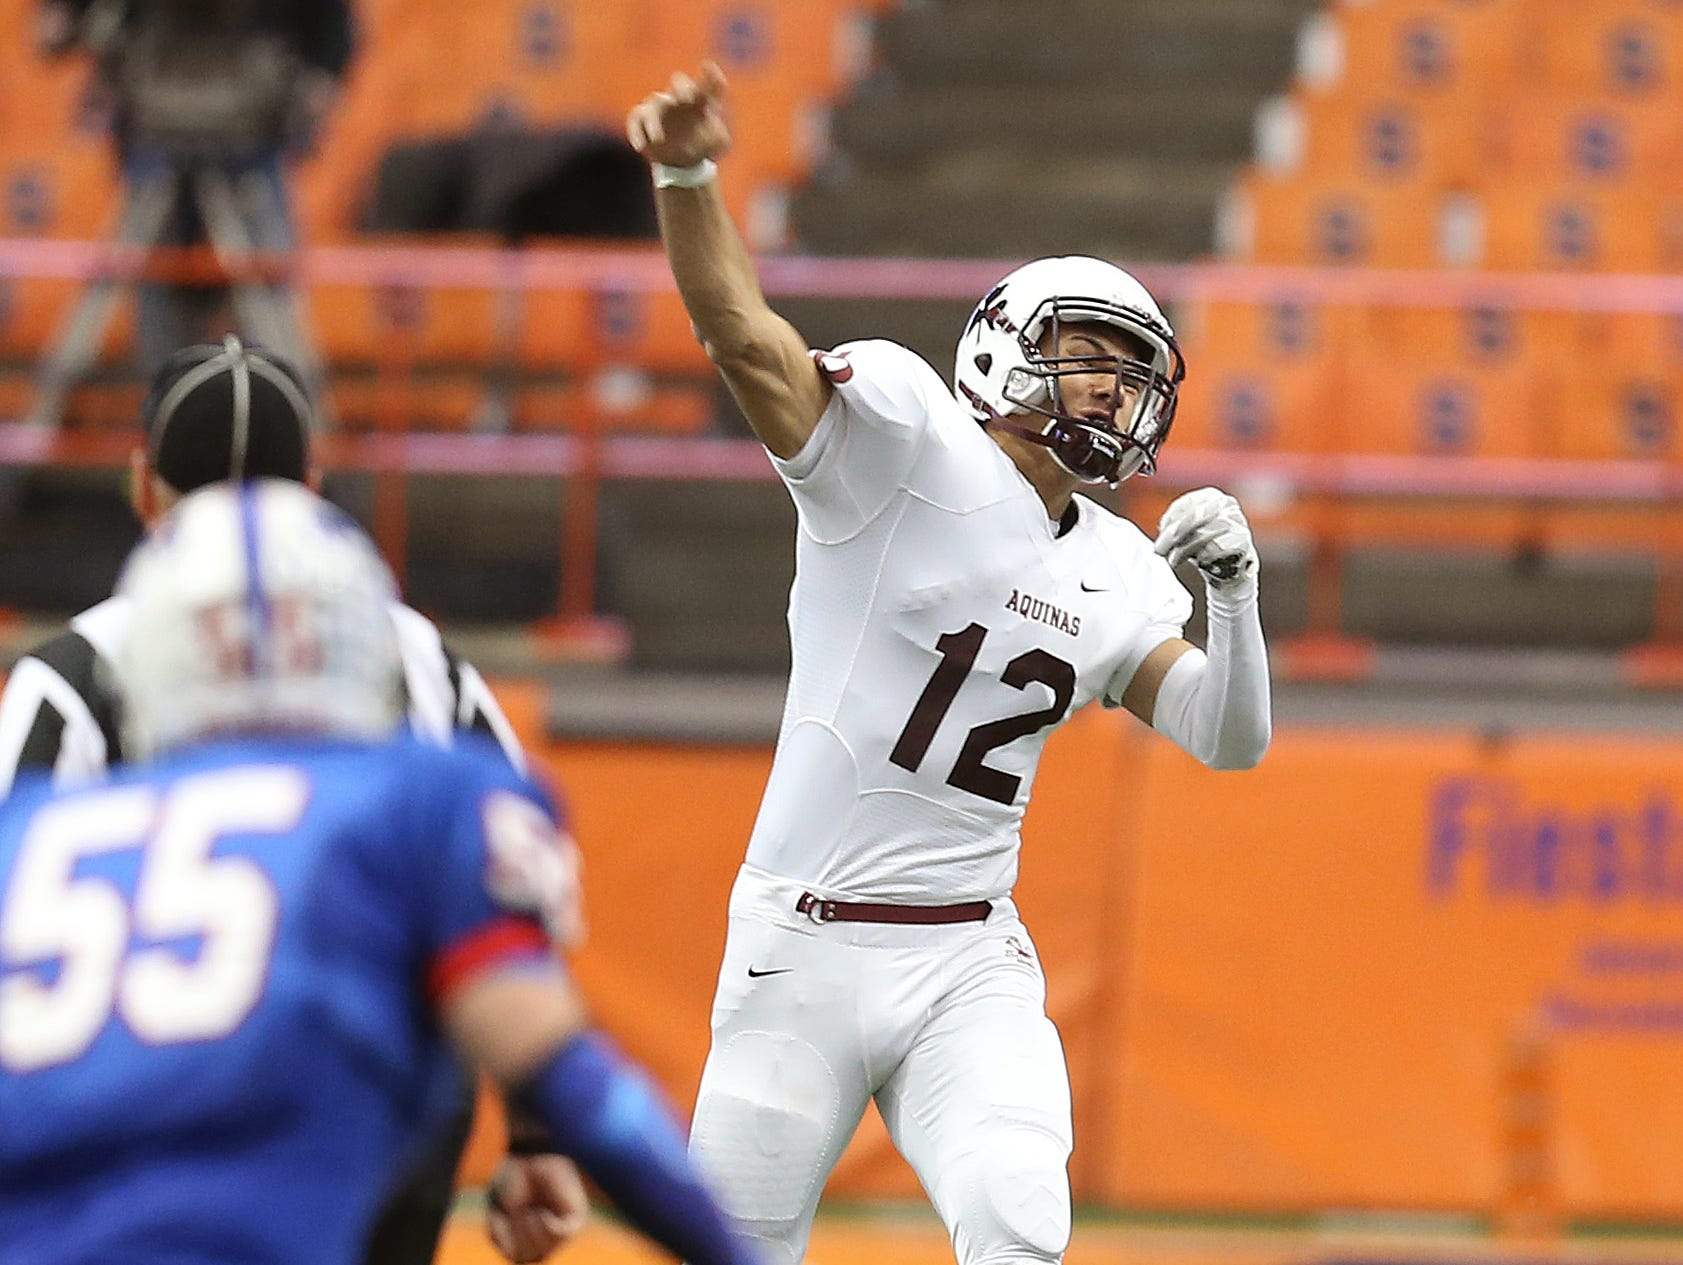 Aquinas quarterback Jake Zembiec goes deep for a touchdown pass to Earnest Edwards. Zembiec threw for 462 yards and 4 touchdowns as they beat Saratoga Springs to win the State Class AA title.